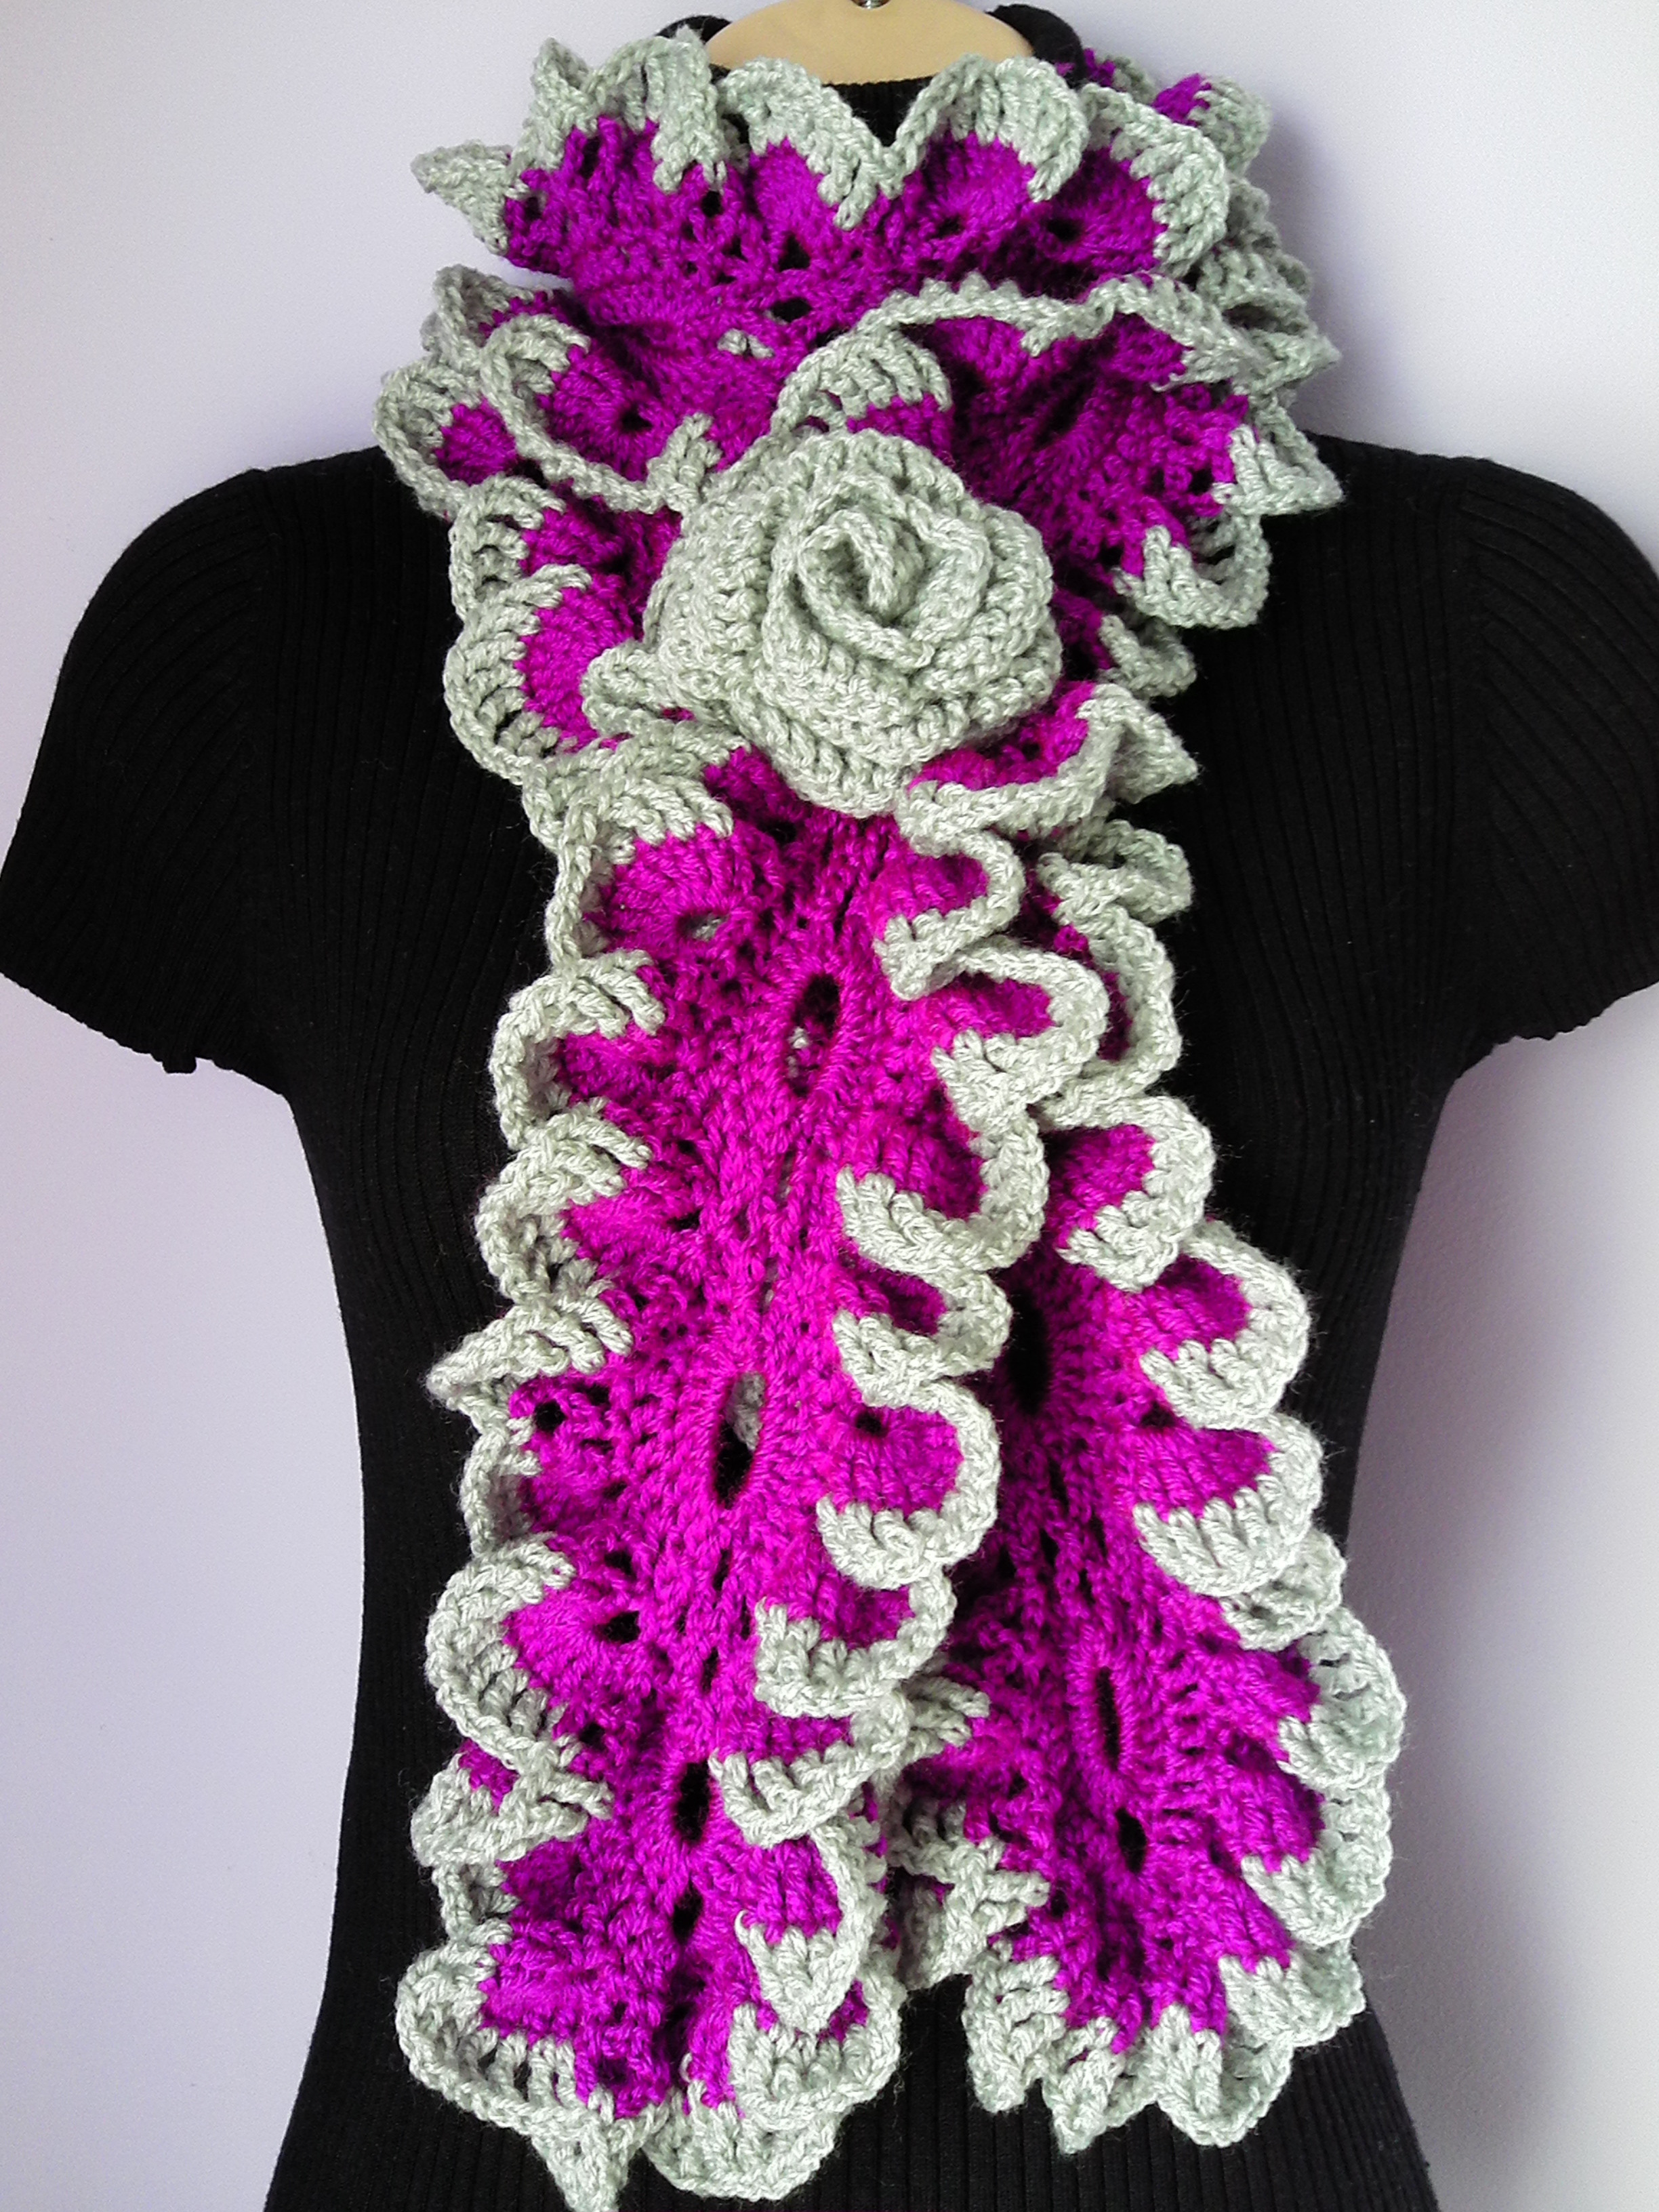 Unique Tatjanaboutique Crochet Ruffle Scarf Of Inspirational Firehawke Hooks and Needles Free Pattern Ruffle Scarf Crochet Ruffle Scarf